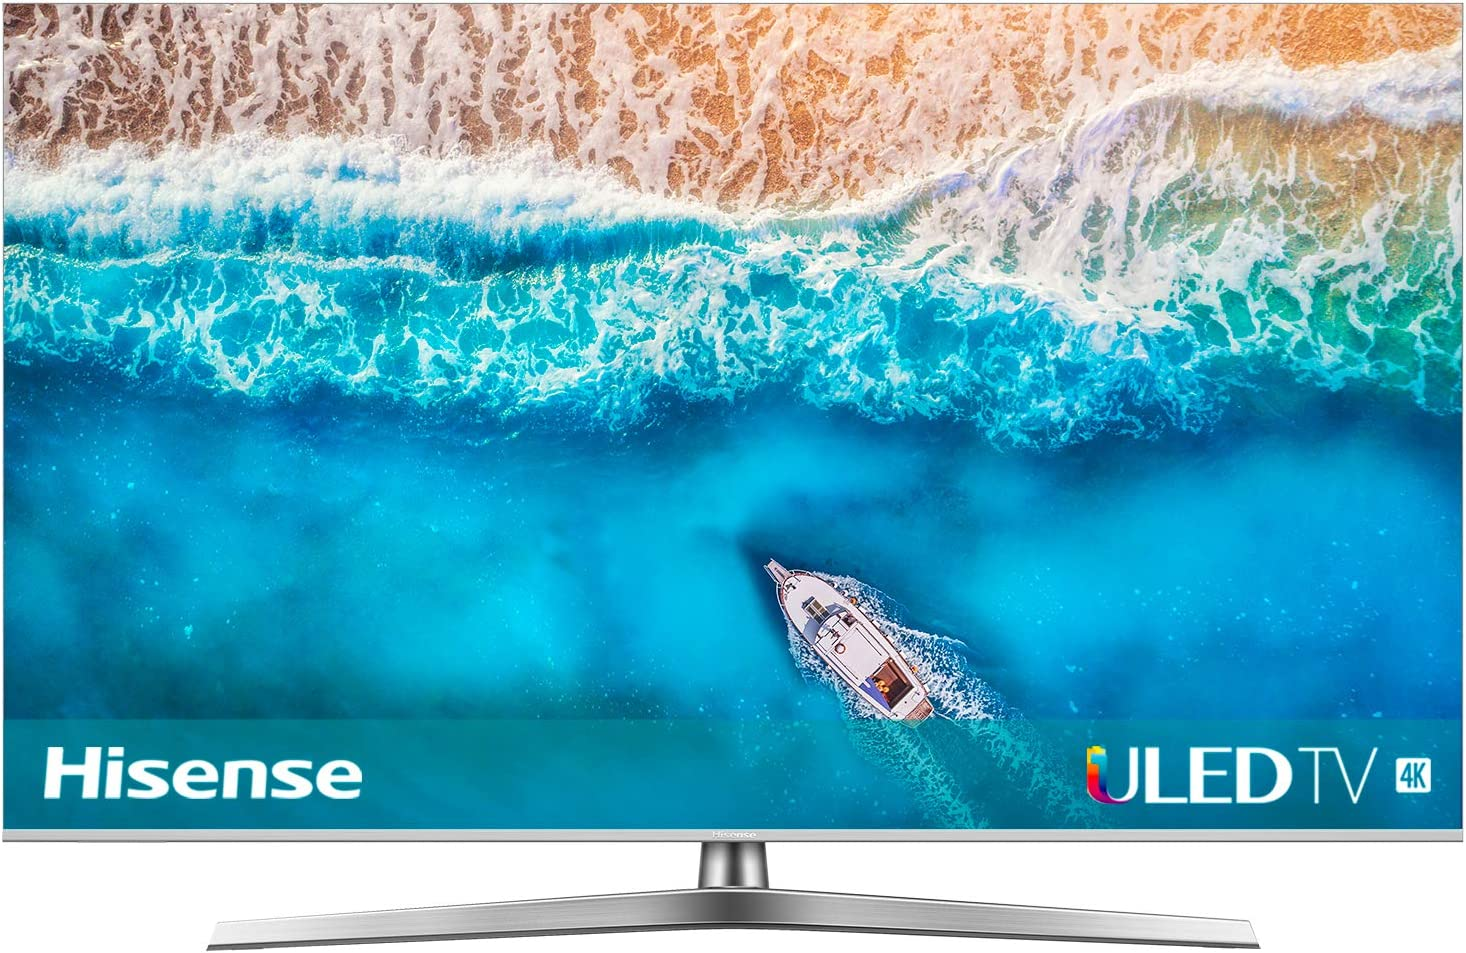 Hisense H65U7B - TV ULED 65 4K Ultra HD con Alexa Integrada, BT, Dolby Vision HDR 1000, Audio Dolby Atmos, Ultra Dimming, Procesador QC, Smart TV VIDAA U 3.0 con IA, Mando